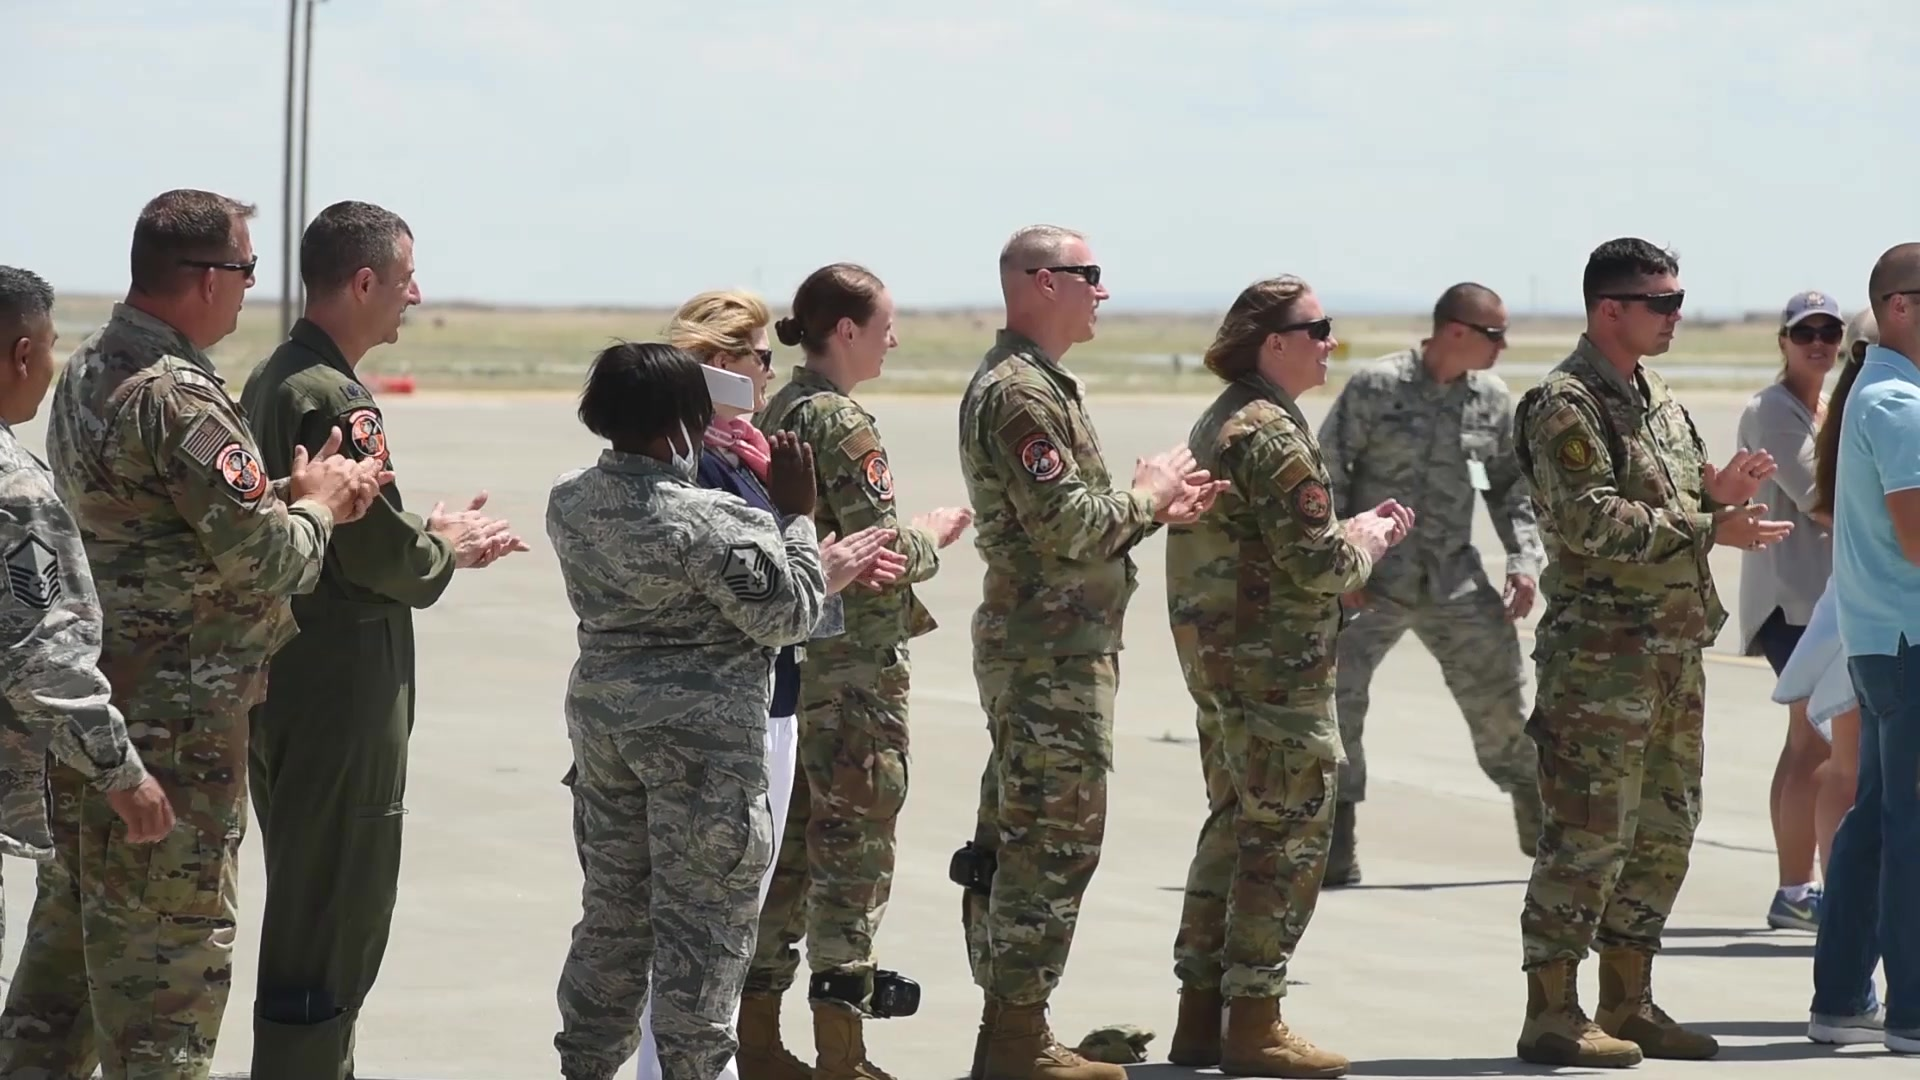 Col. Rick Goodman and the 366th Fighter Wing welcome the 389th Fighter Squadron back to Mountain Home Air Force Base!